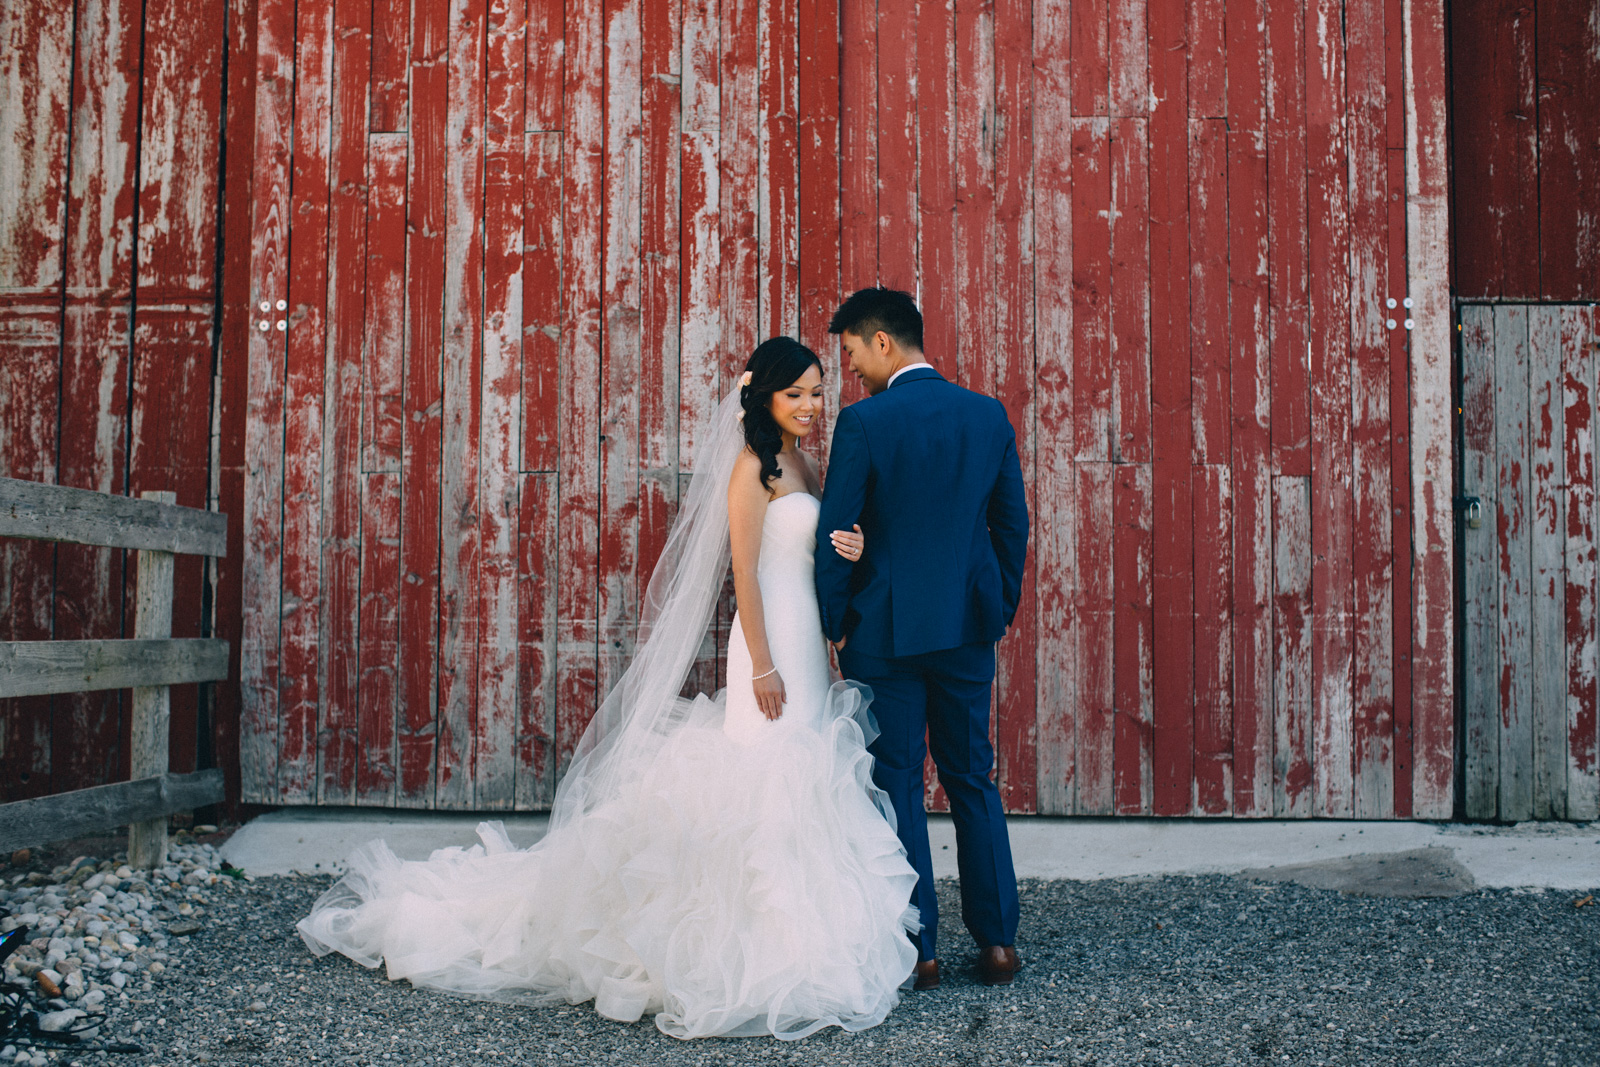 cambium-farms-wedding-photography-by-sam-wong-of-artanis-collective_01